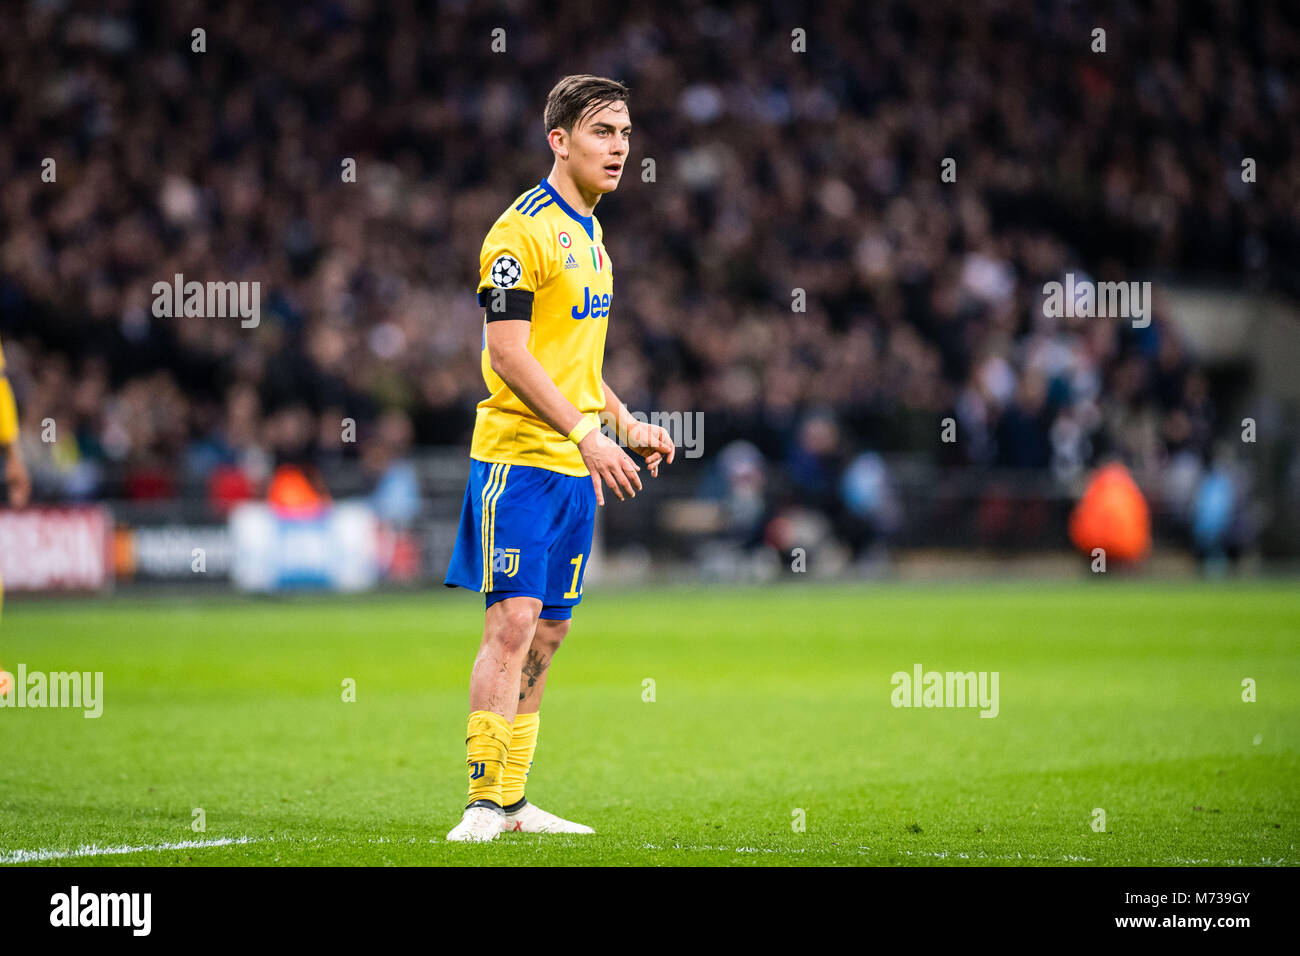 wholesale dealer 6229a 682bf LONDON, ENGLAND - MARCH 07: Paulo Dybala (10) of Juventus ...